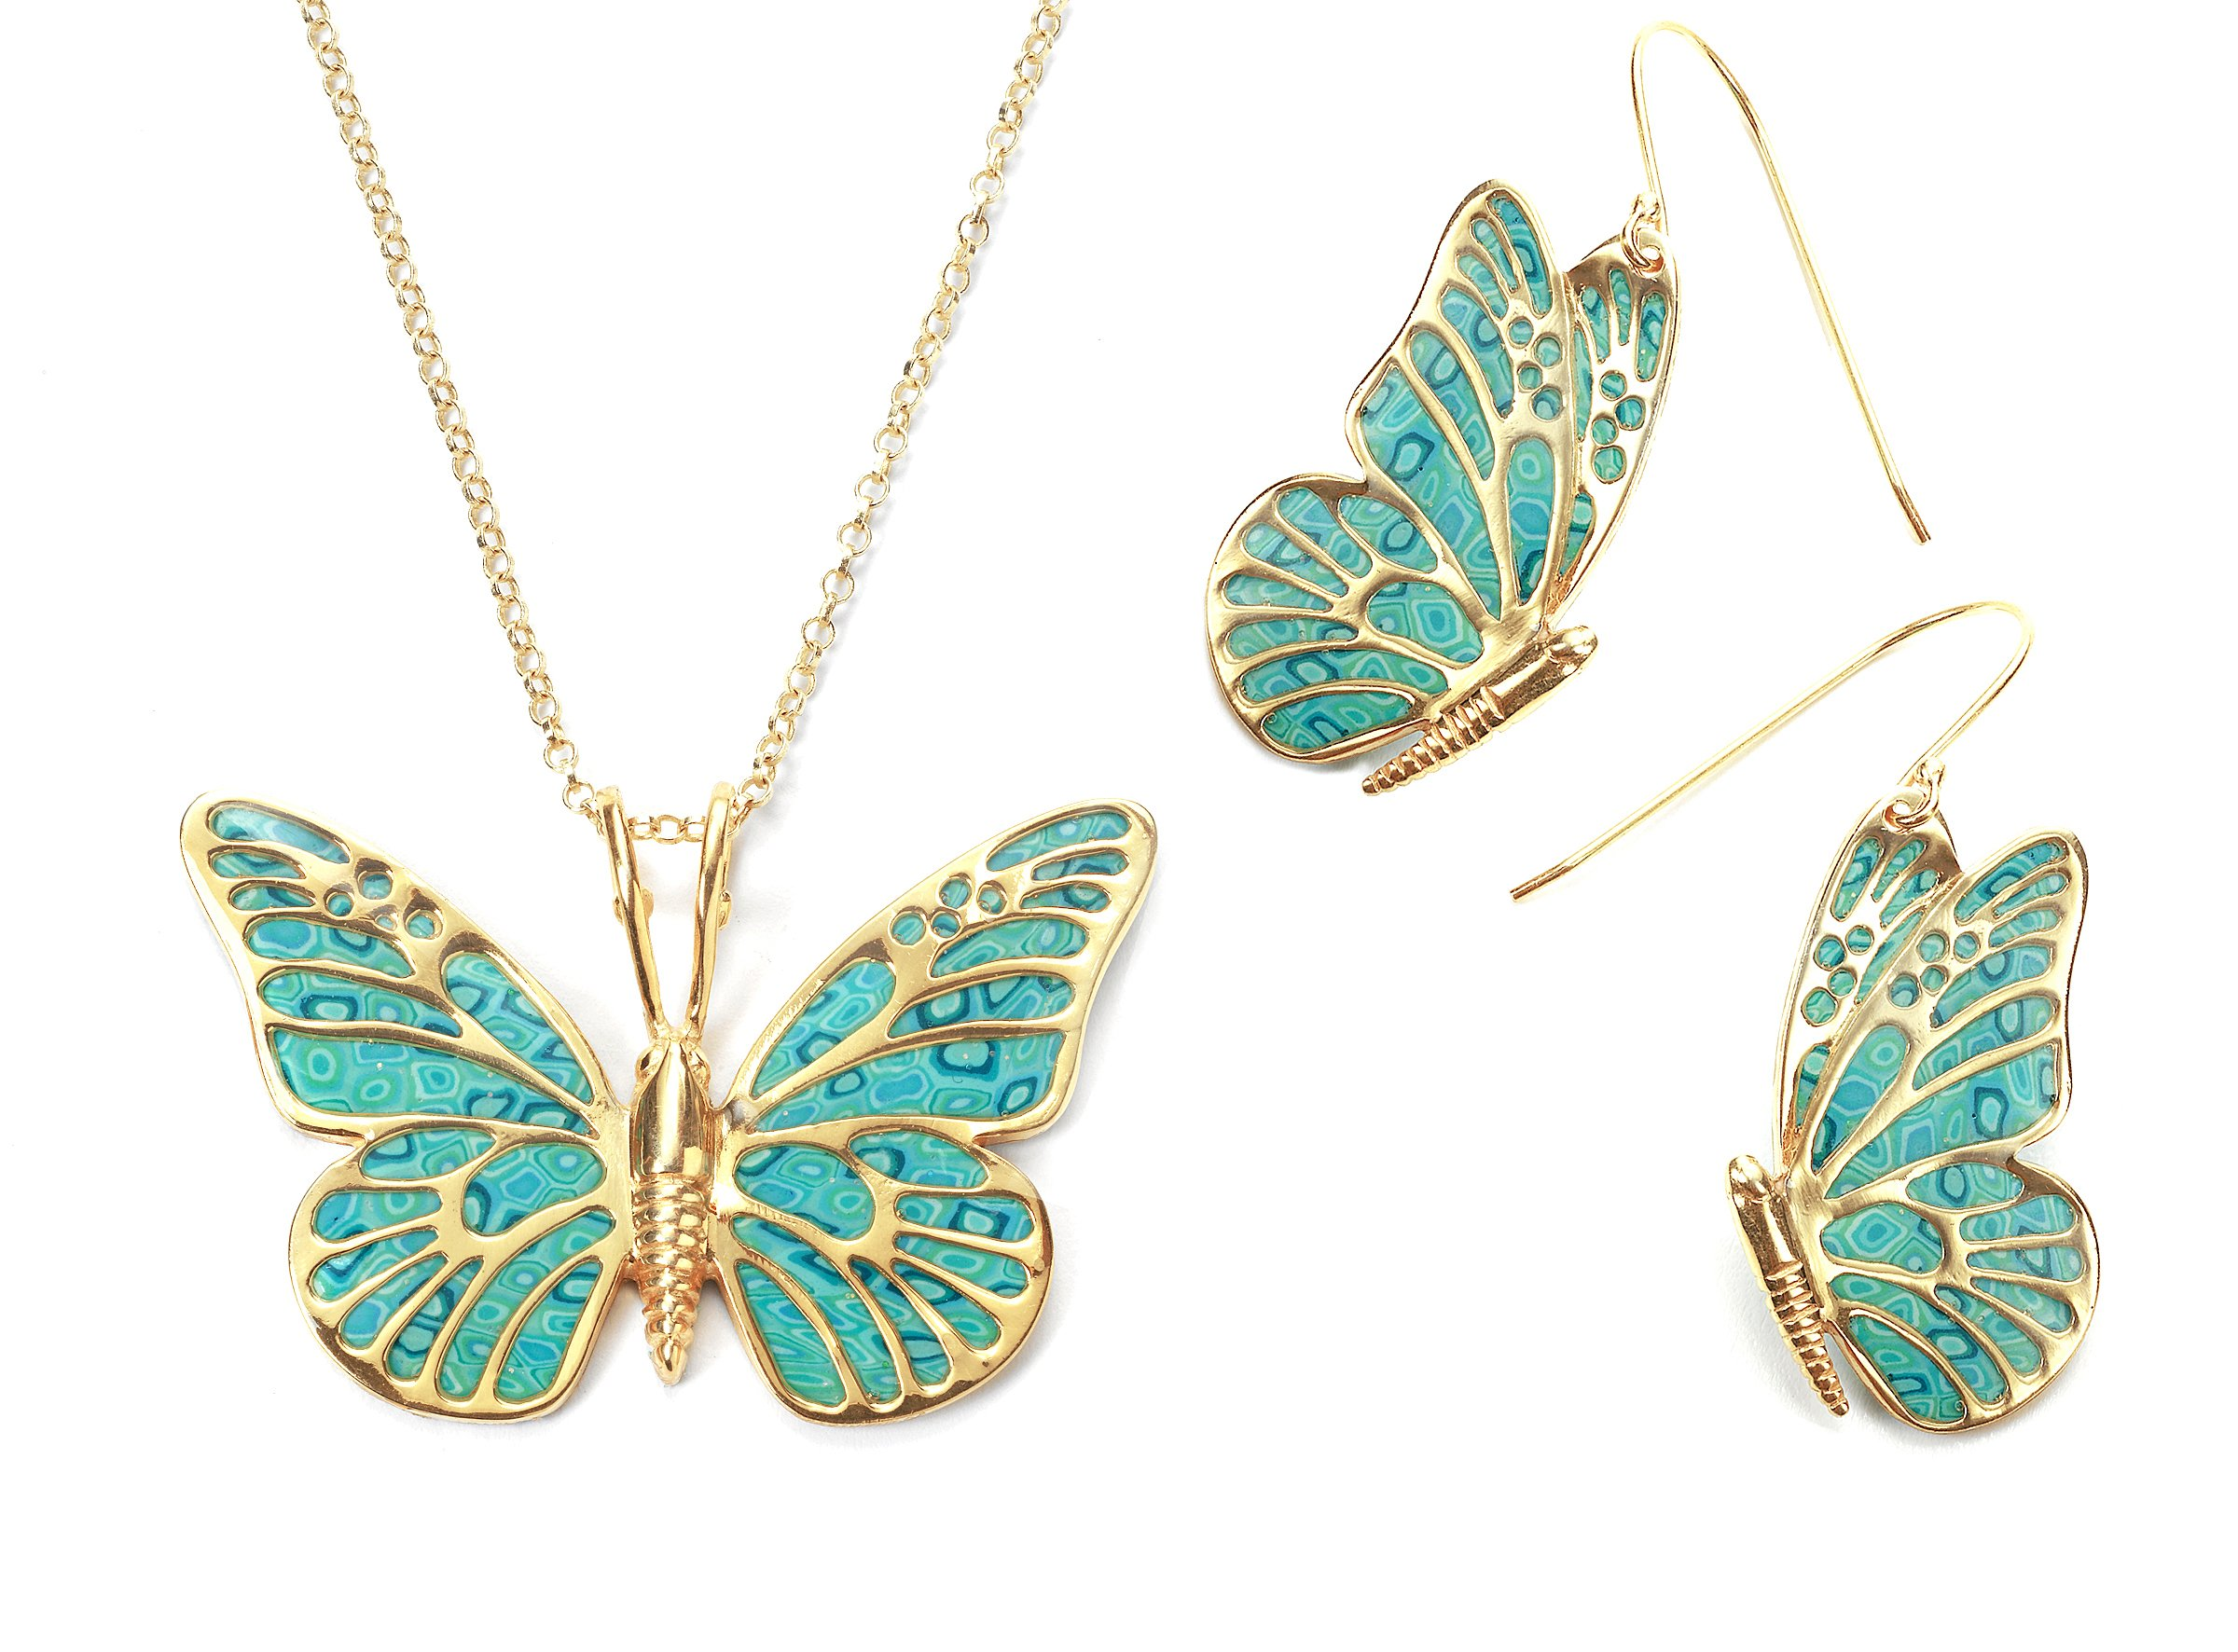 Gold Plated Silver Butterfly Necklace Earring Set Sea Green Polymer Clay Jewelry, 16.5'' Gold Filled Chain by Adina Plastelina Handmade Jewelry